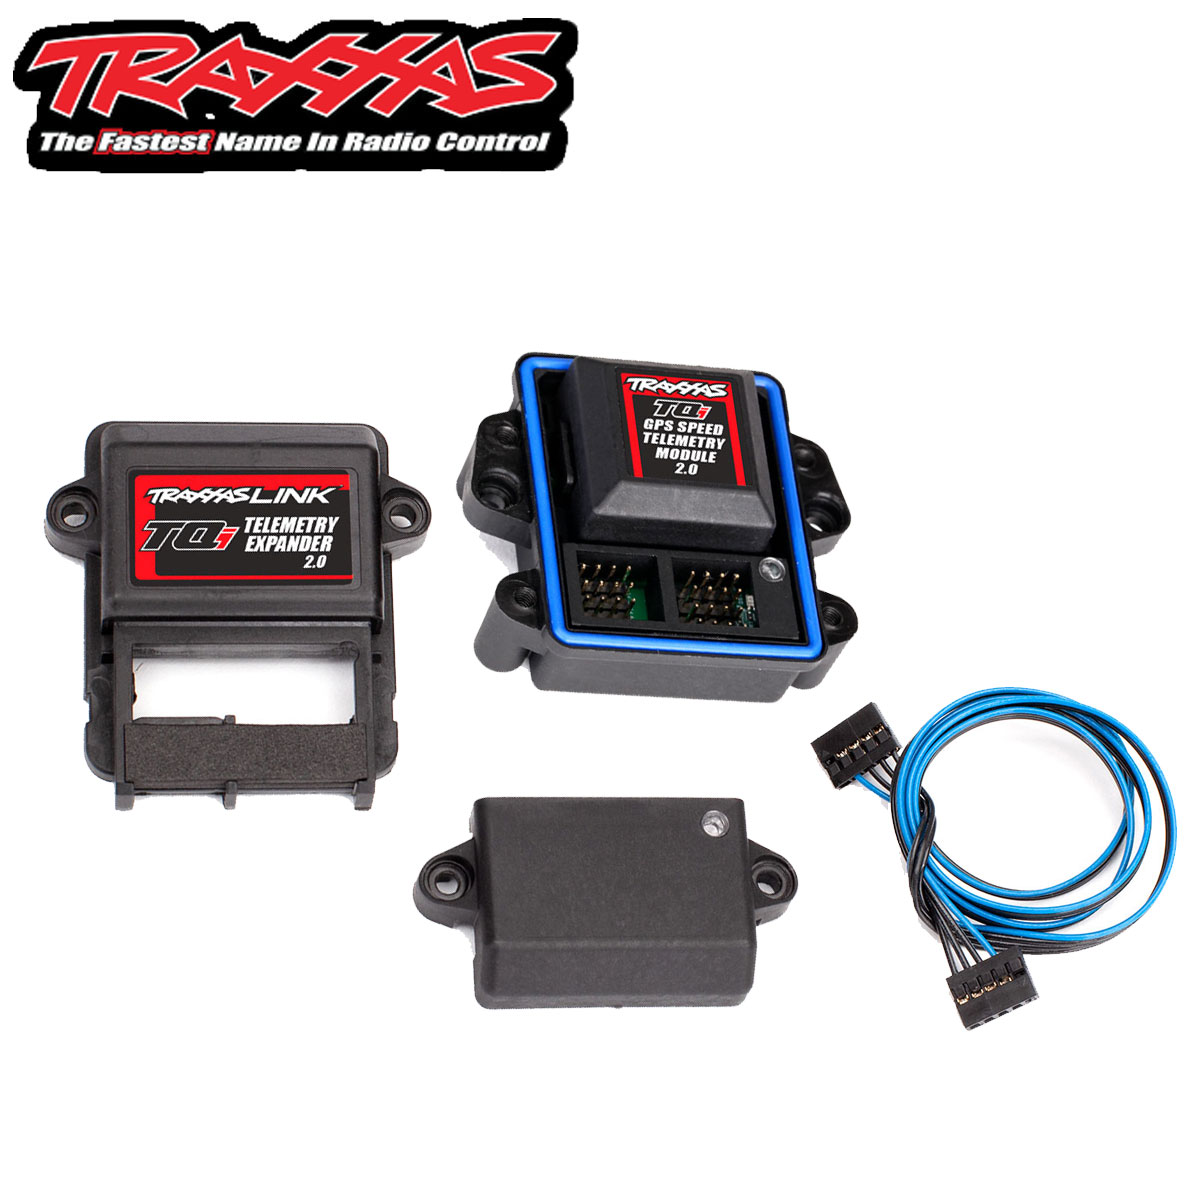 Traxxas 6553X Telemetry expander 2.0 and GPS module 2.0 TQi radio system TRA1